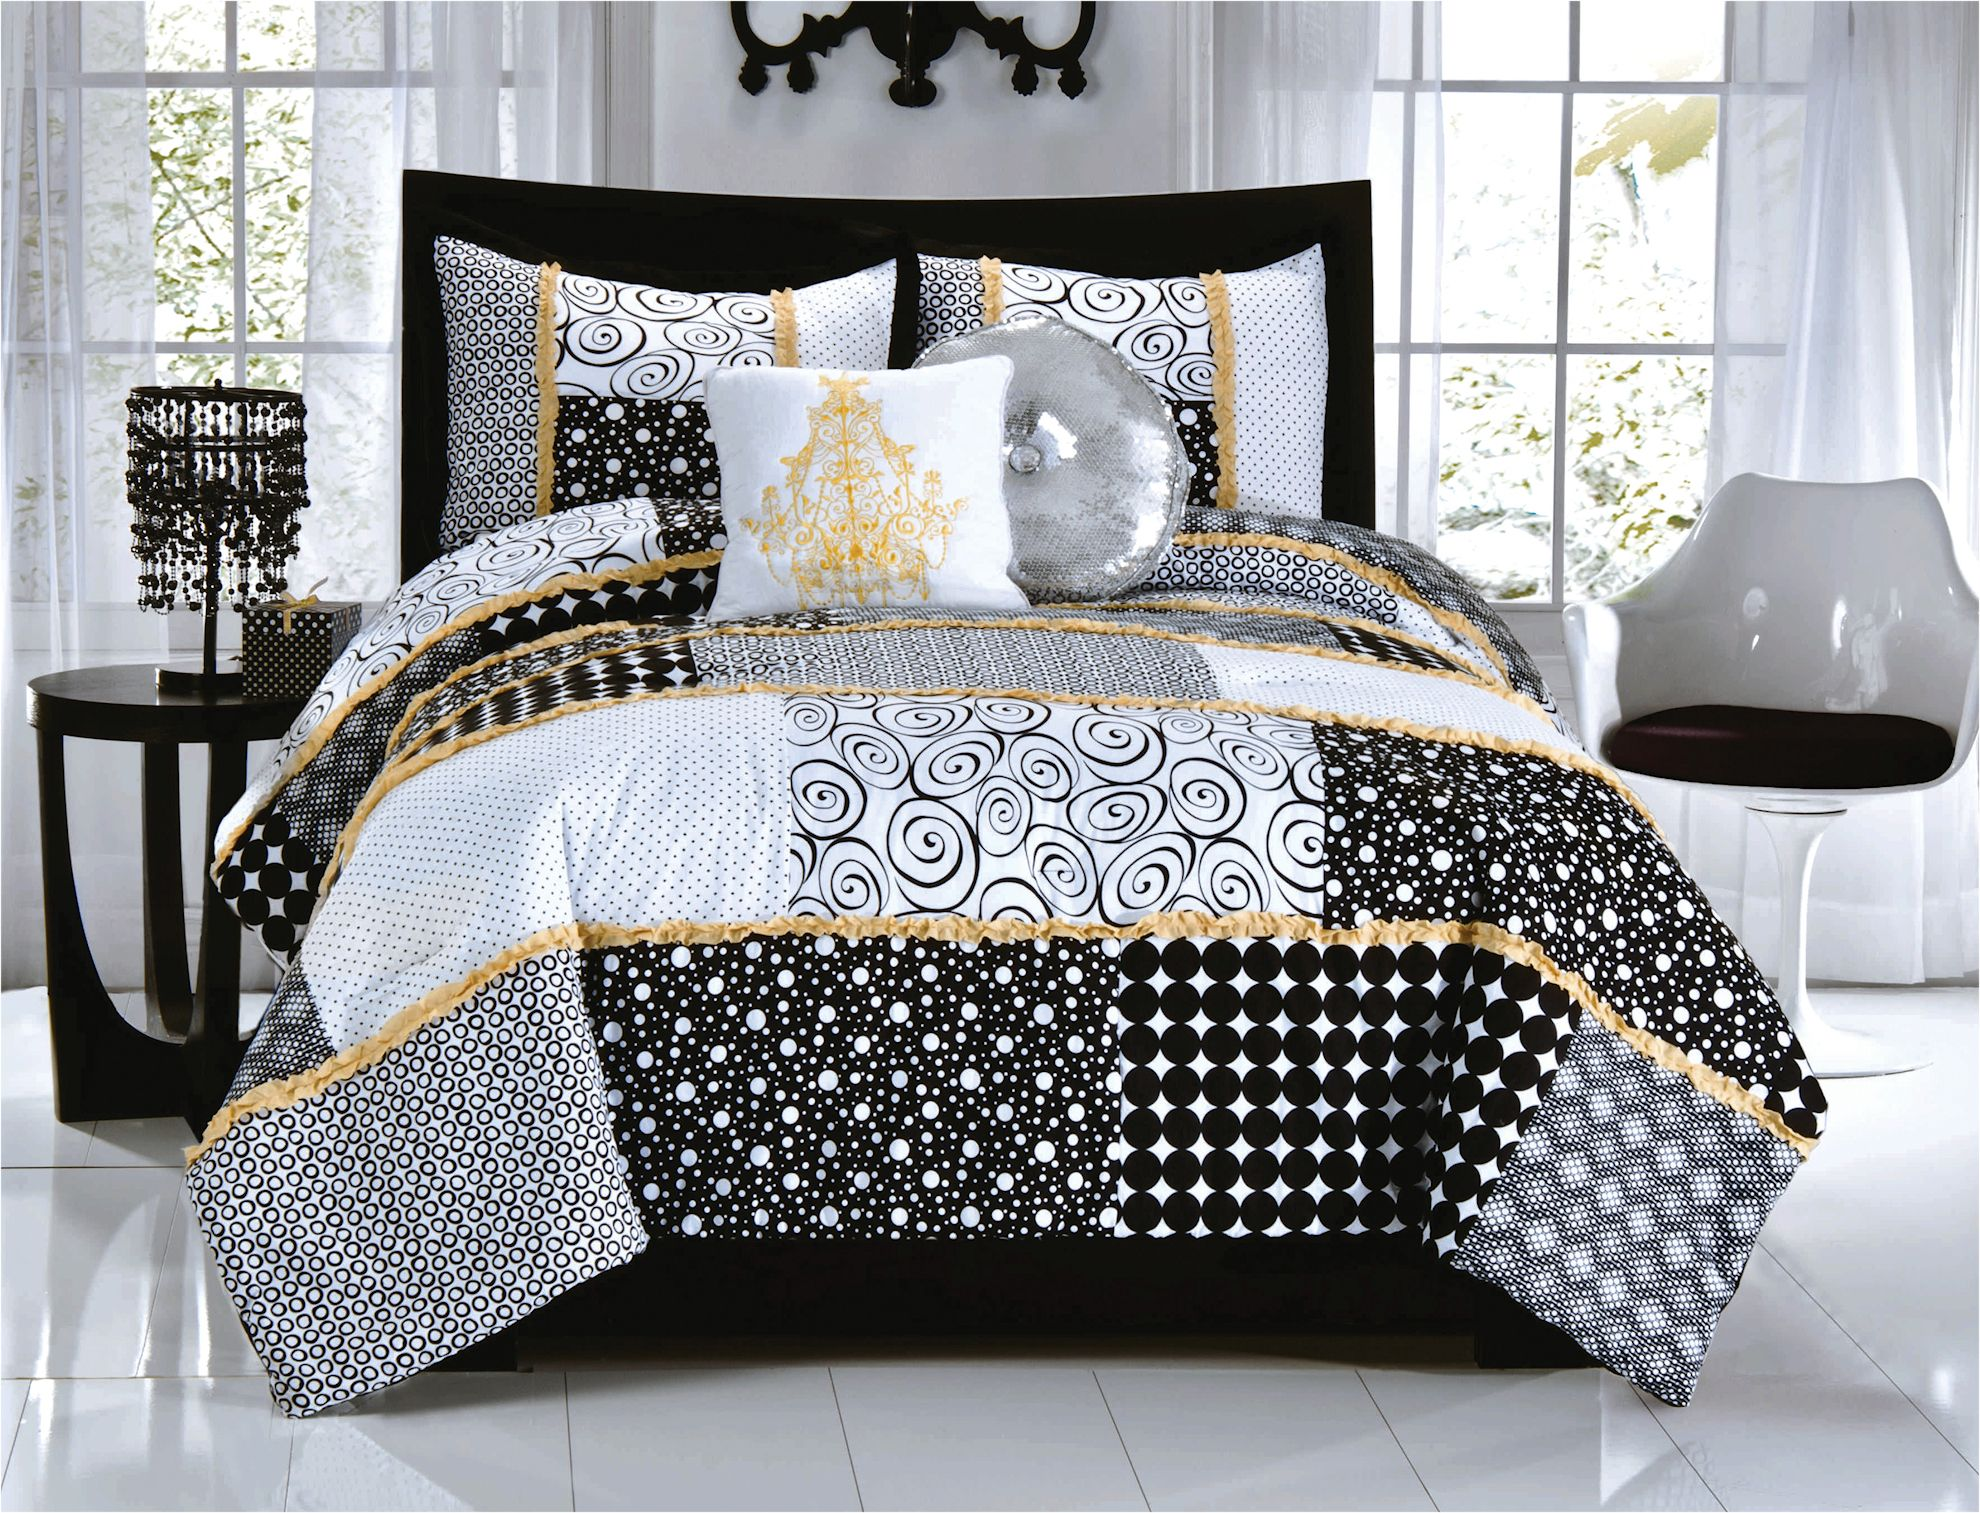 elegant black white dot scroll teen girl bedding twin full queen comforter set gold yellow. Black Bedroom Furniture Sets. Home Design Ideas